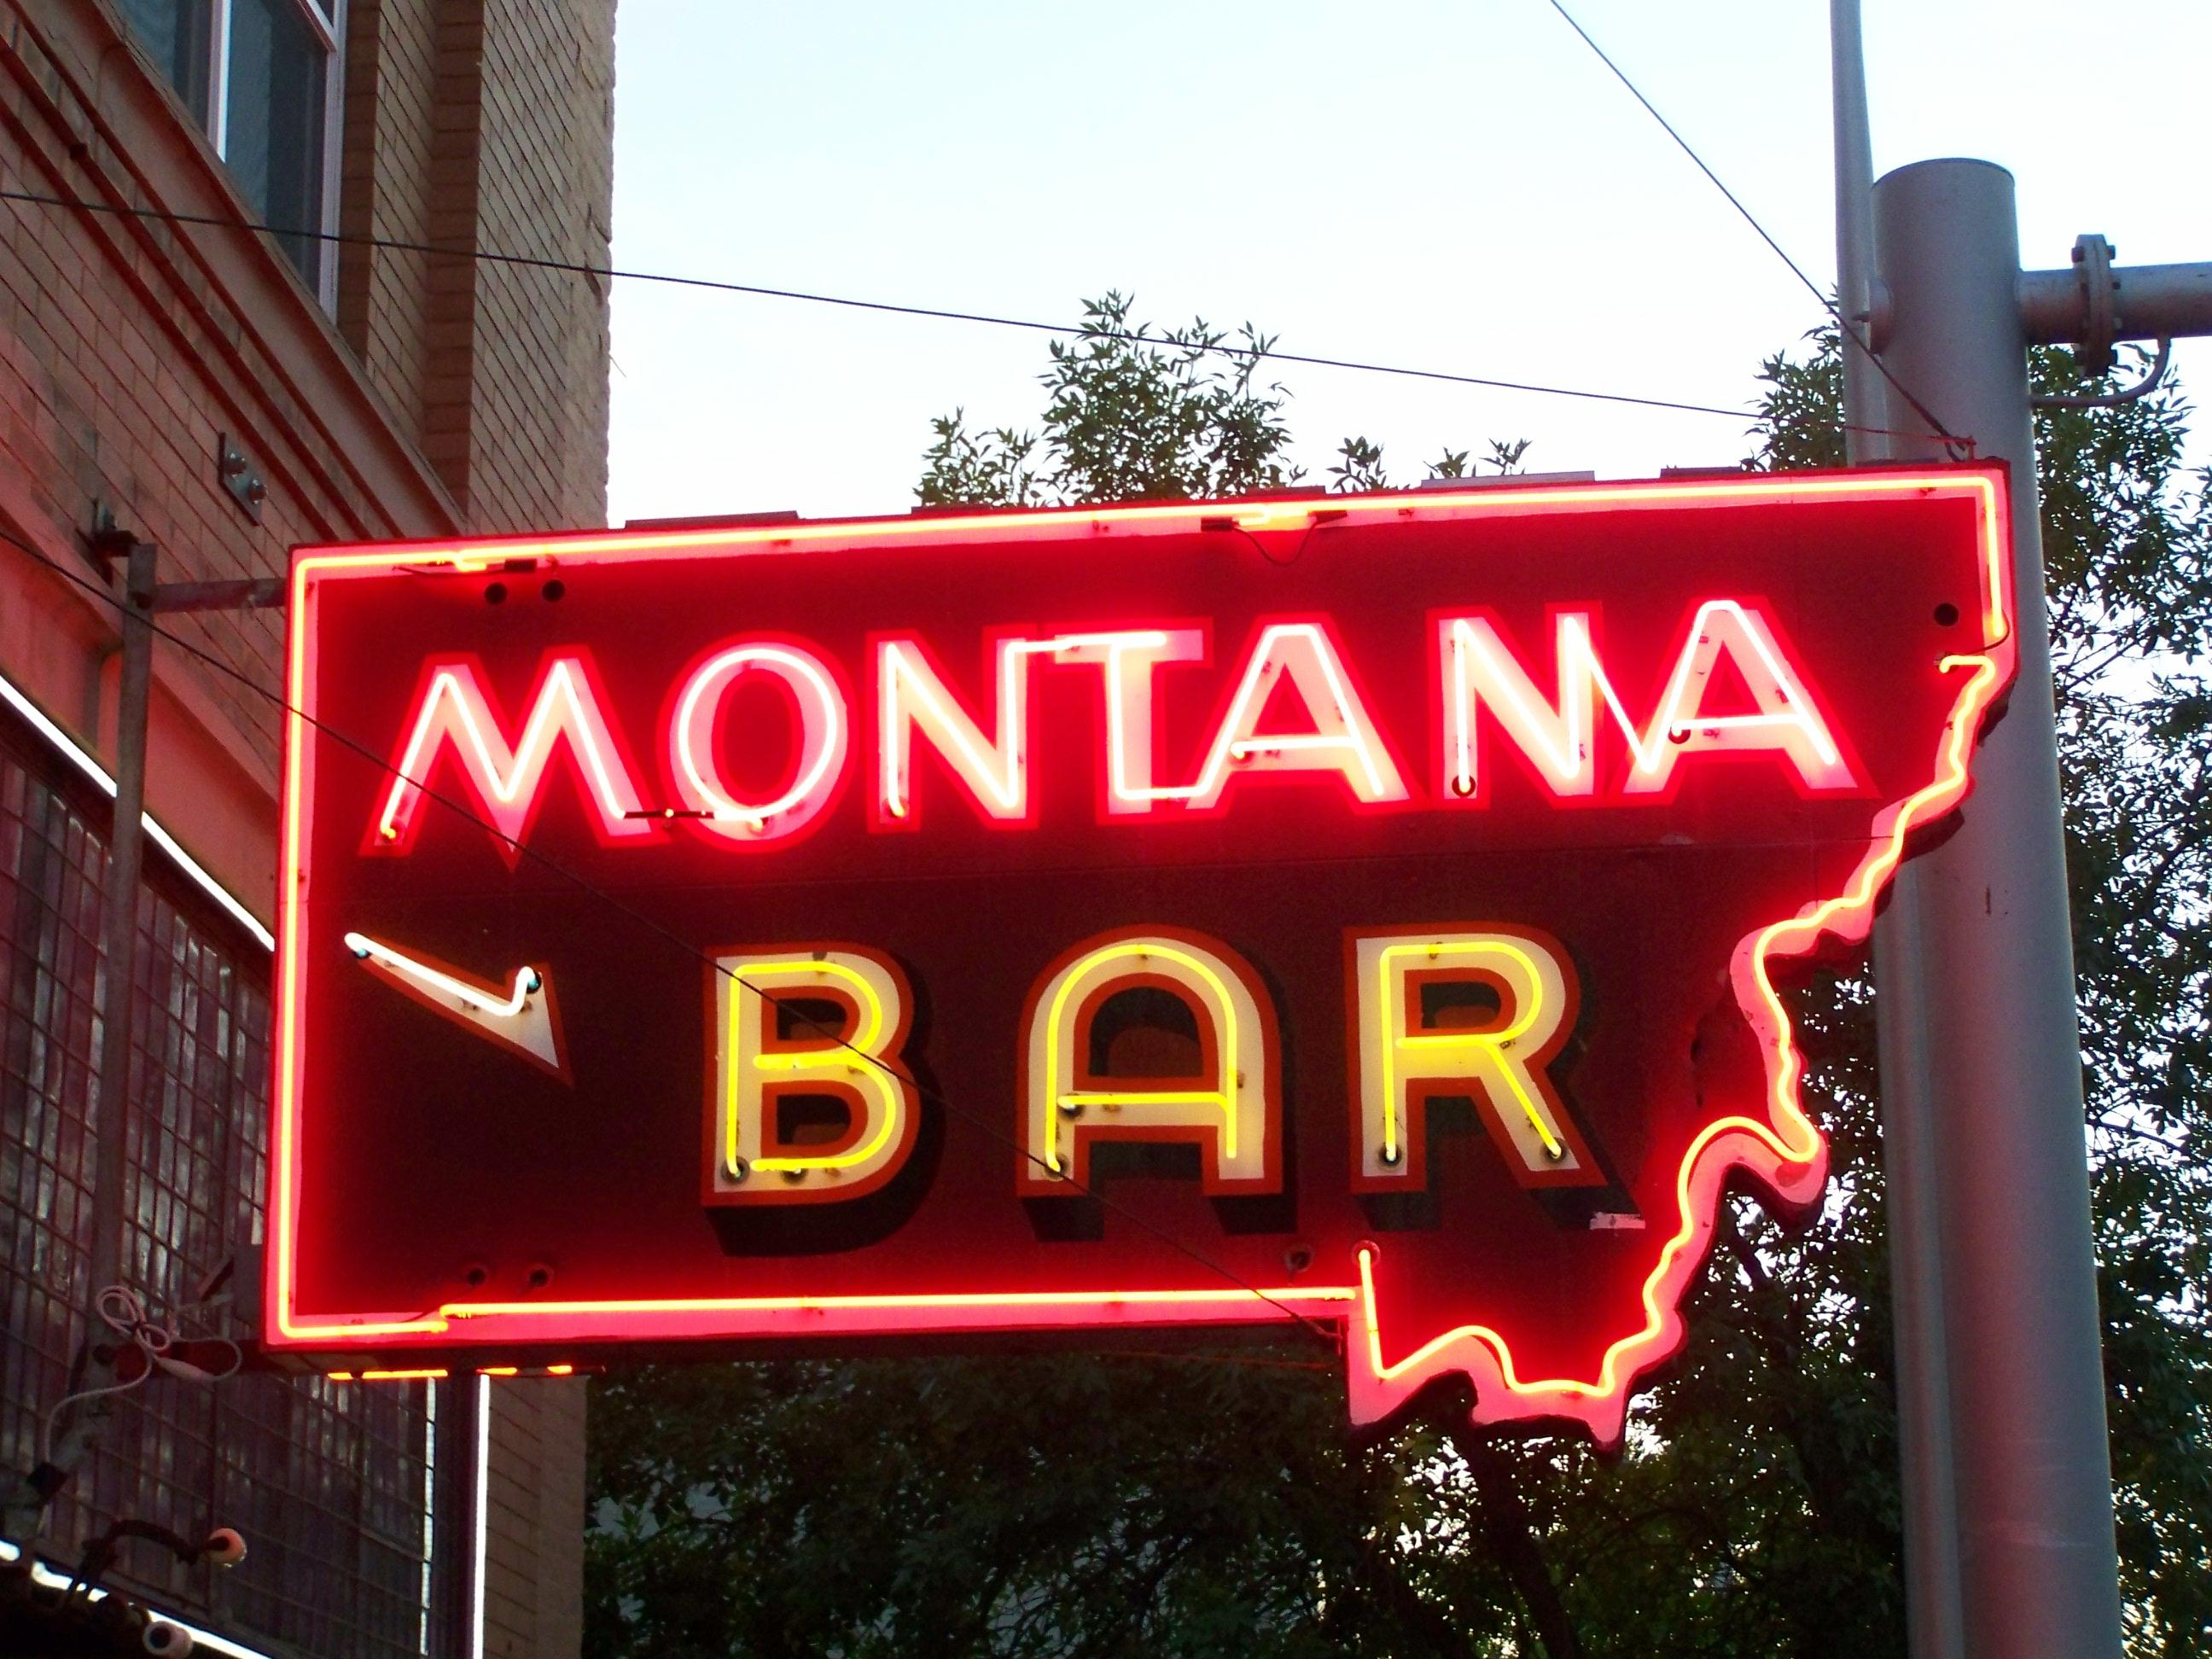 Montana Bar - 612 Main Street, Miles City, Montana U.S.A. - September 19, 2012